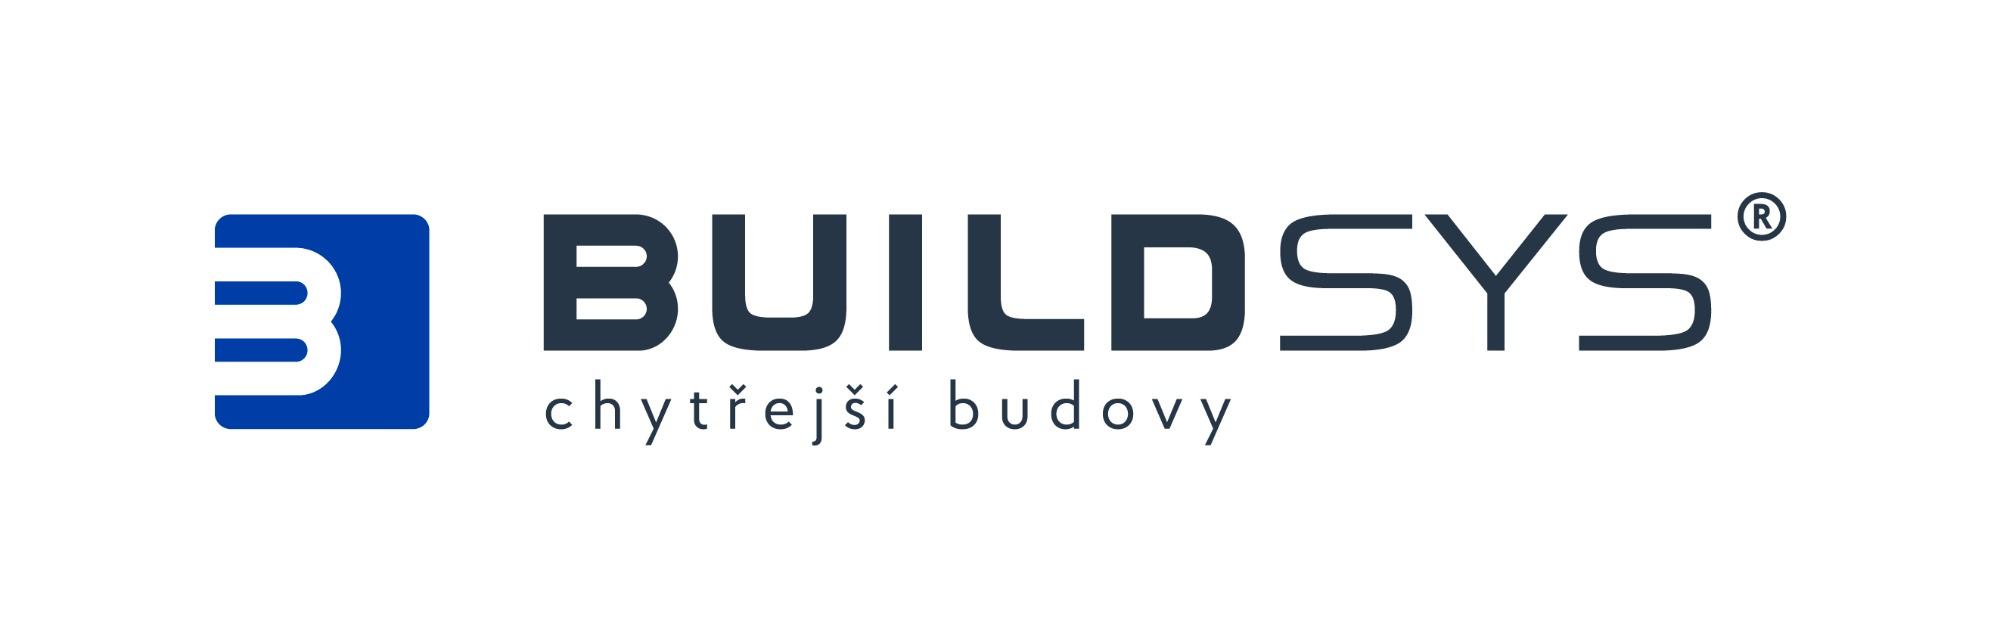 Buildsys